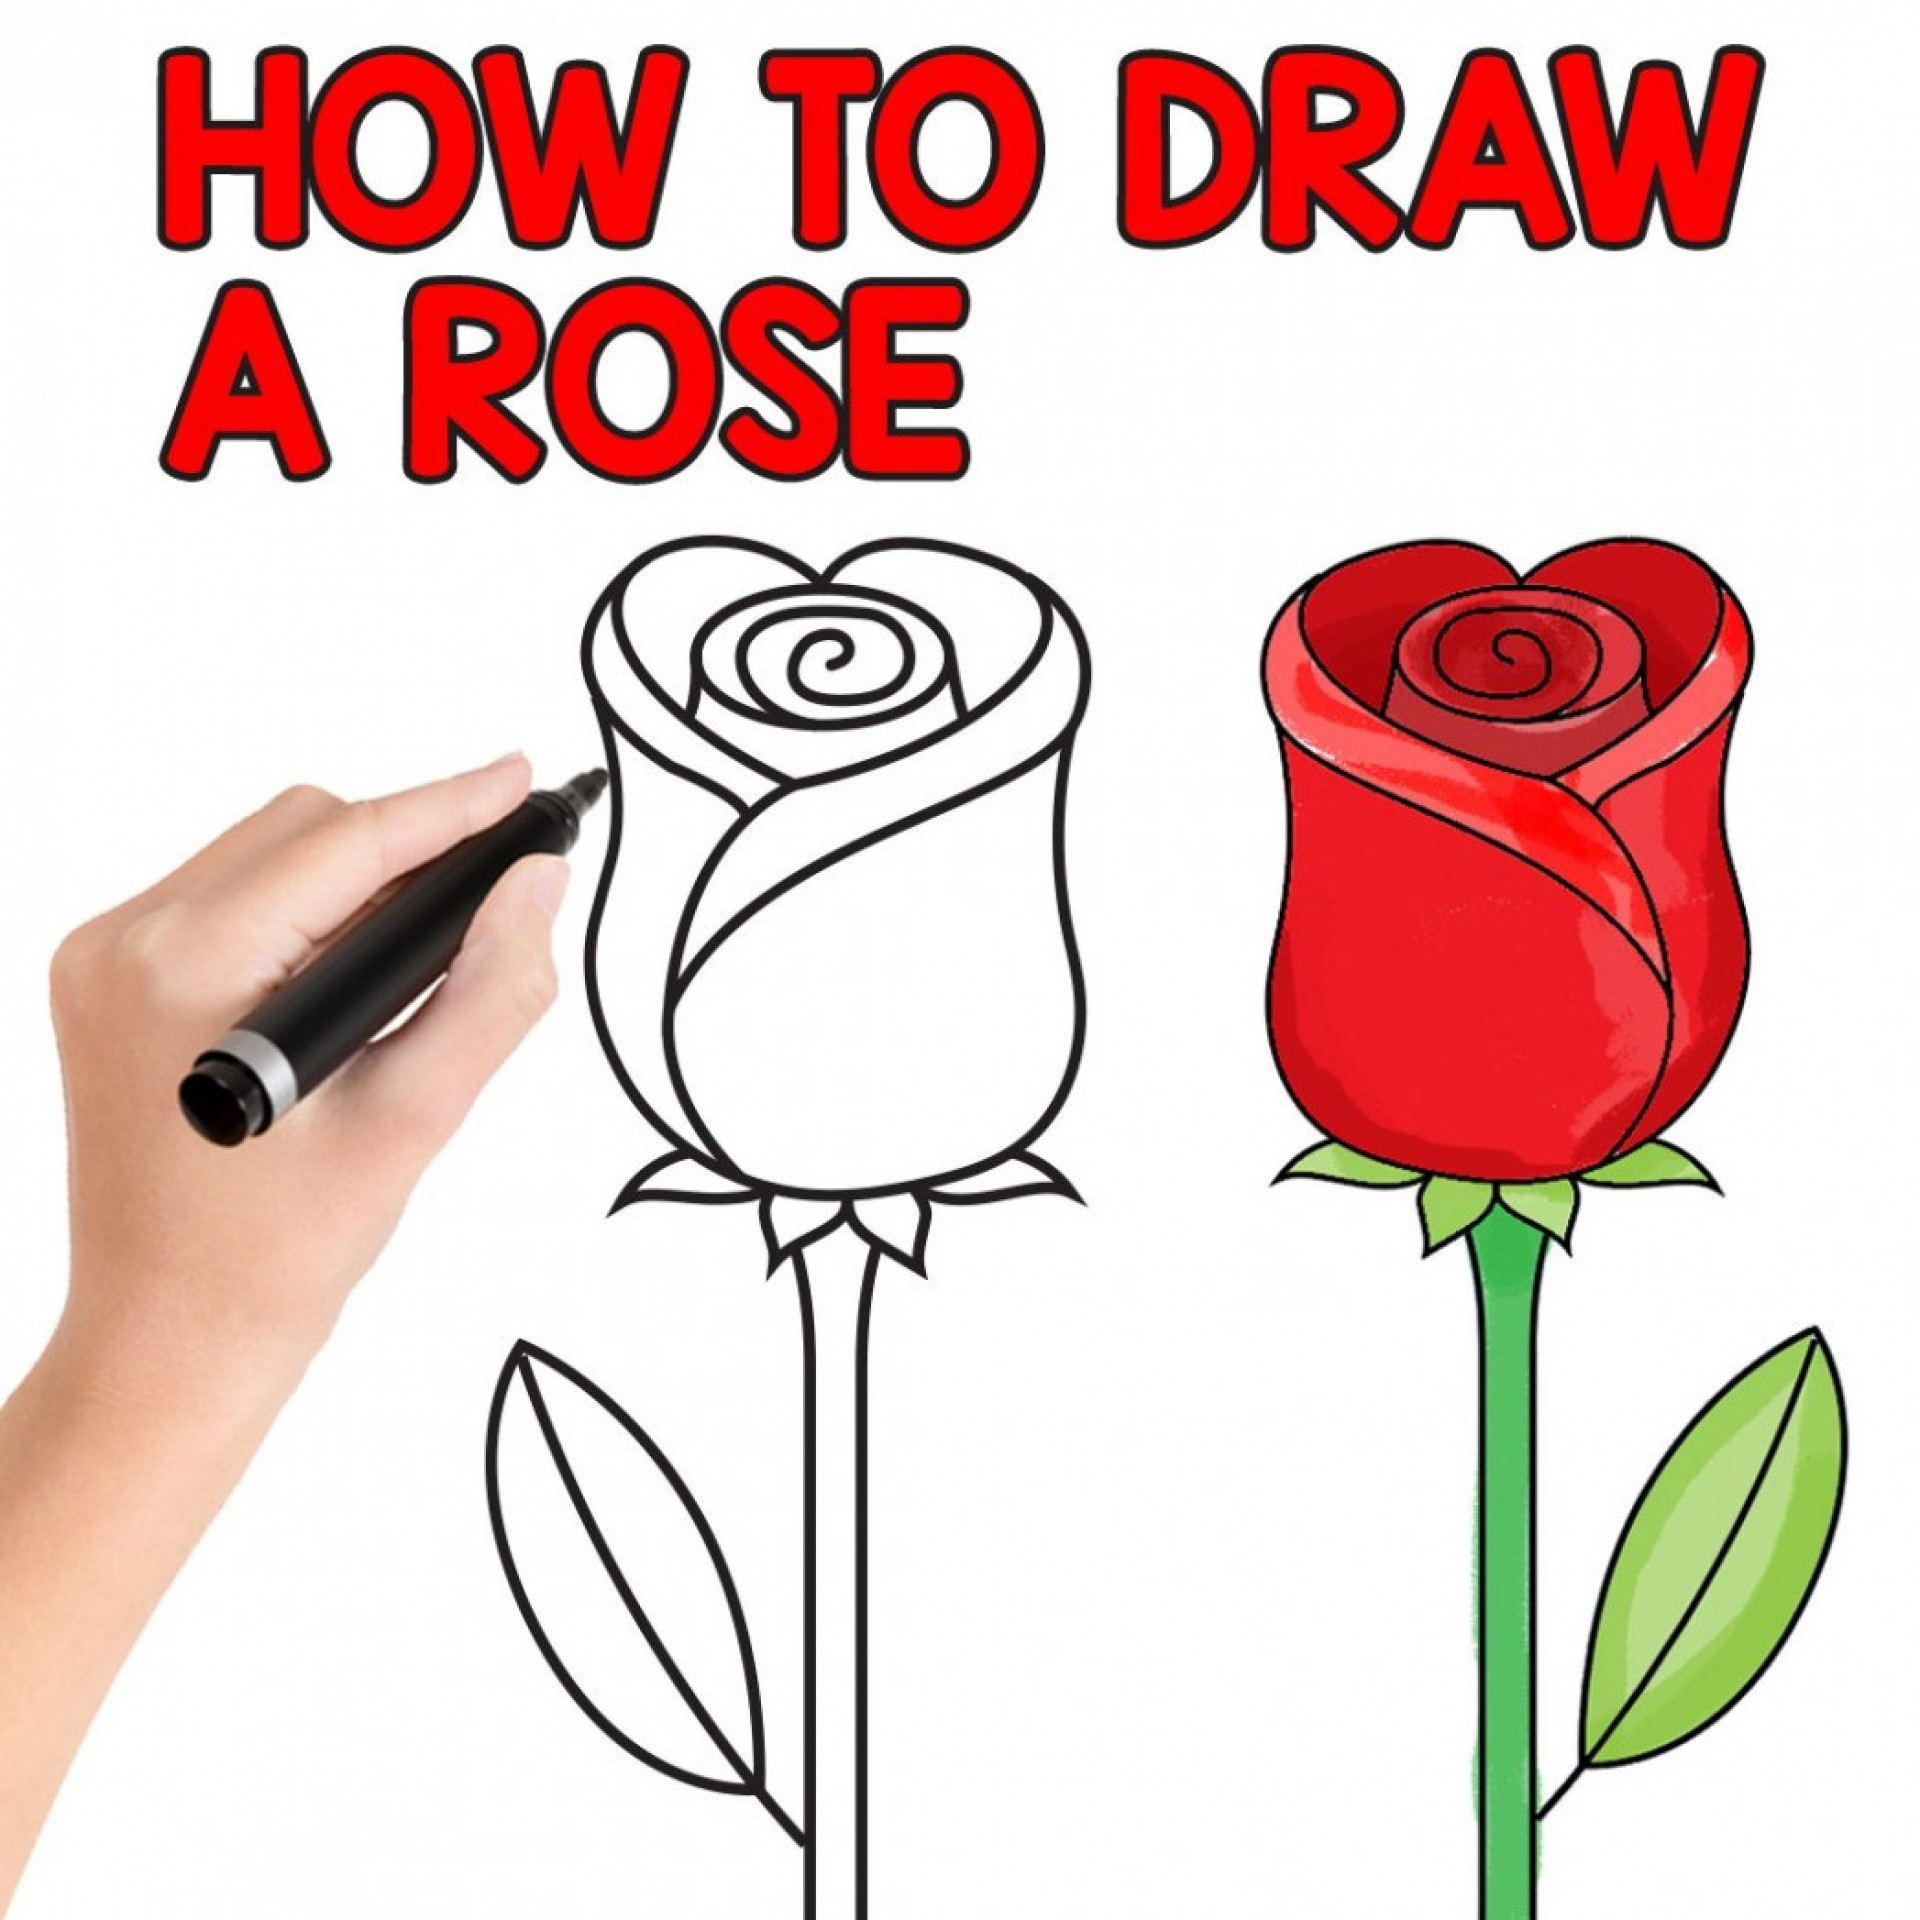 003 Essay Example How To Draw Rose Easy Step By For Beginners And Kids Writing On Flower Kidsssl1 Unbelievable About In Marathi Kannada Language 1920